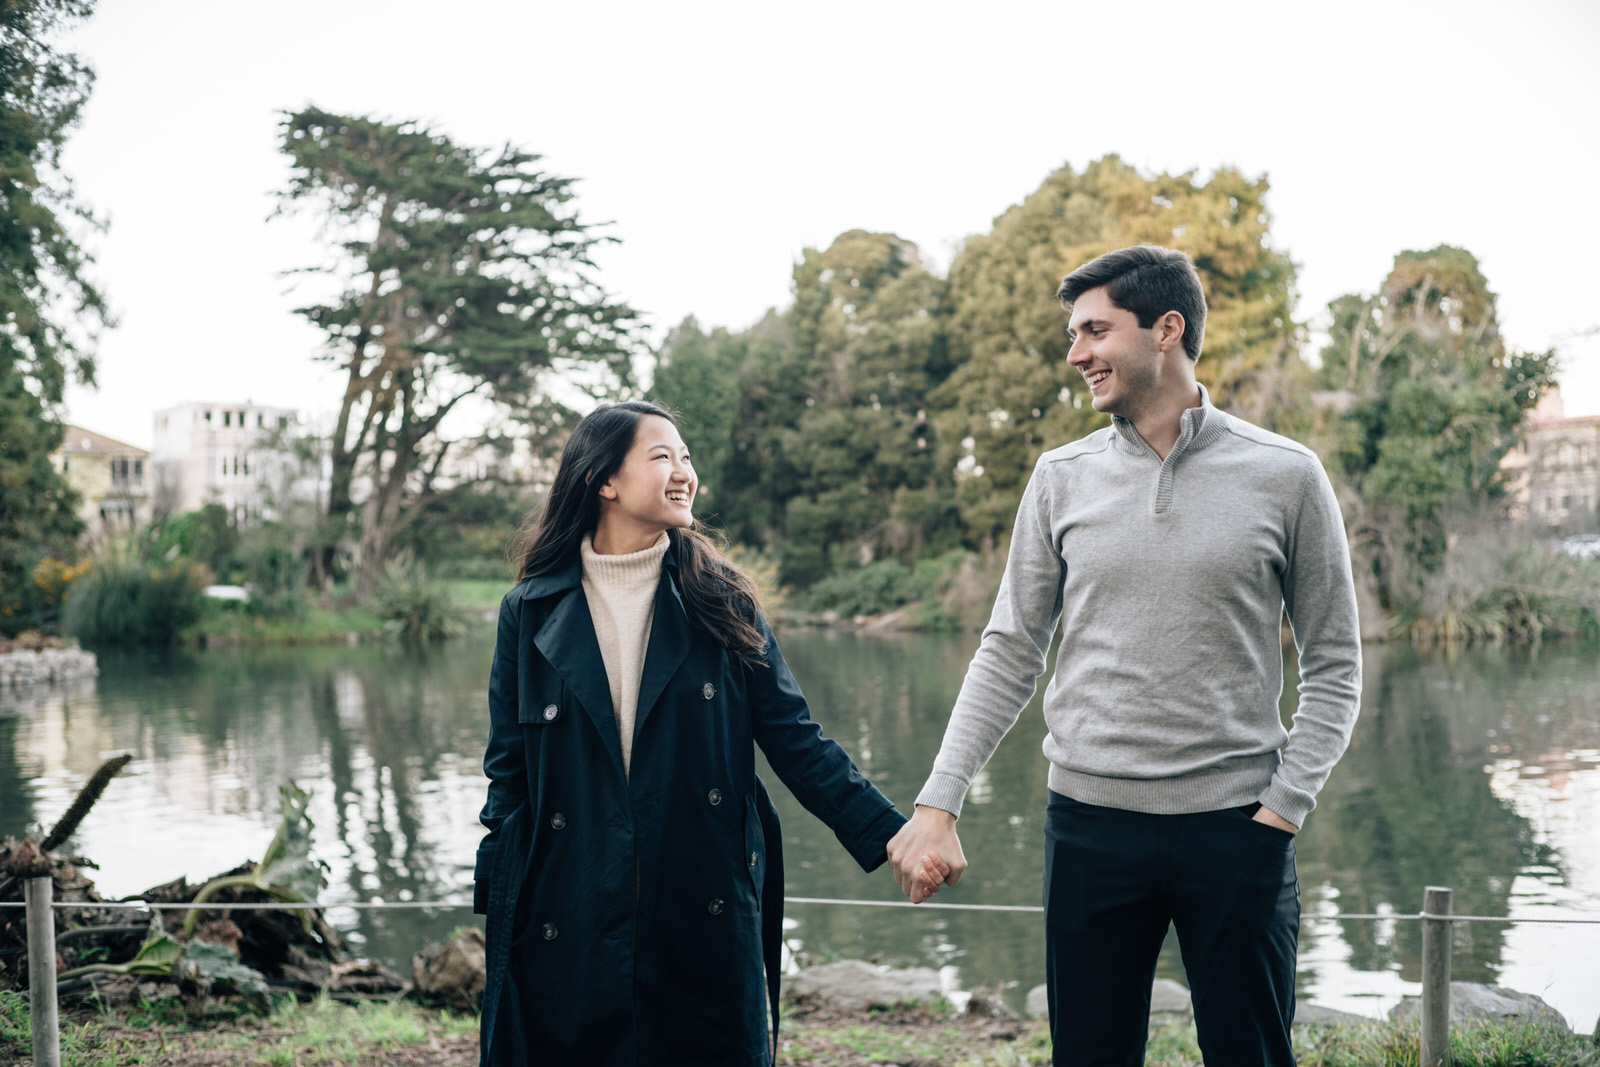 Amanda & Teddy - Palace of Fine Arts SF engagement photo shoot by Jaclyn Le